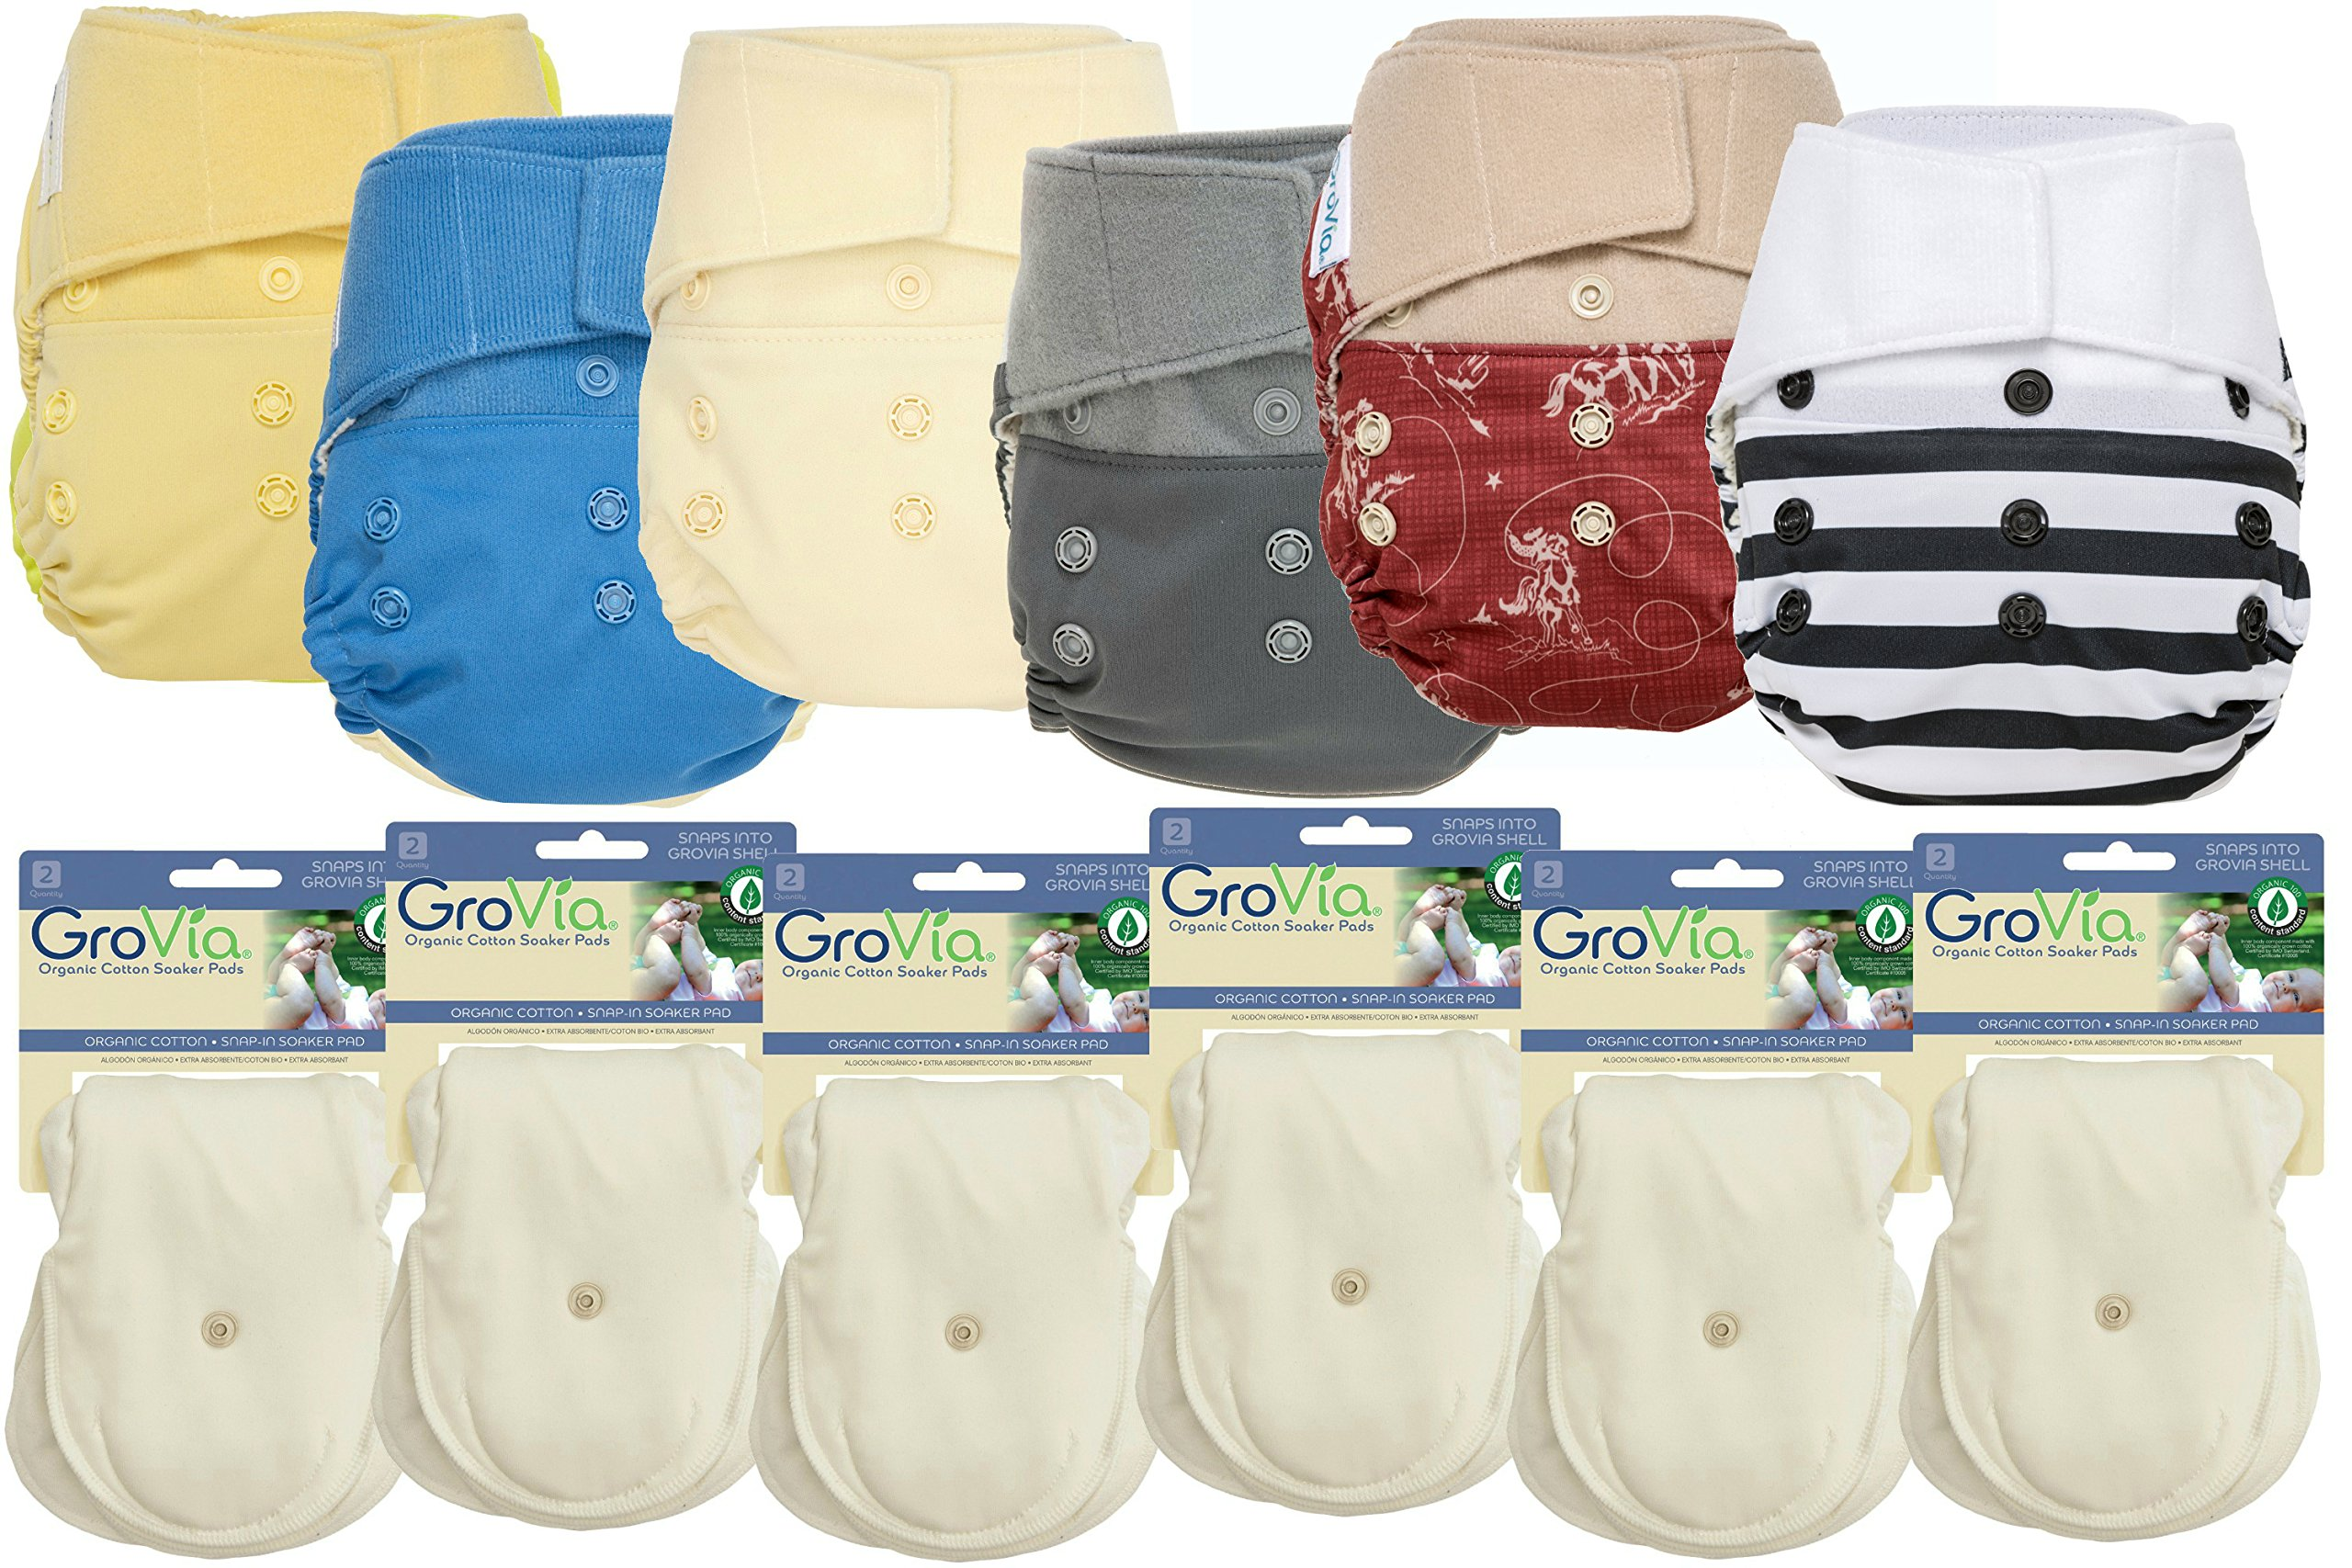 GroVia Hybrid Part Time Package: 6 Shells + 12 Organic Cotton Soaker Pads (Color Mix 1 - Hook & Loop)